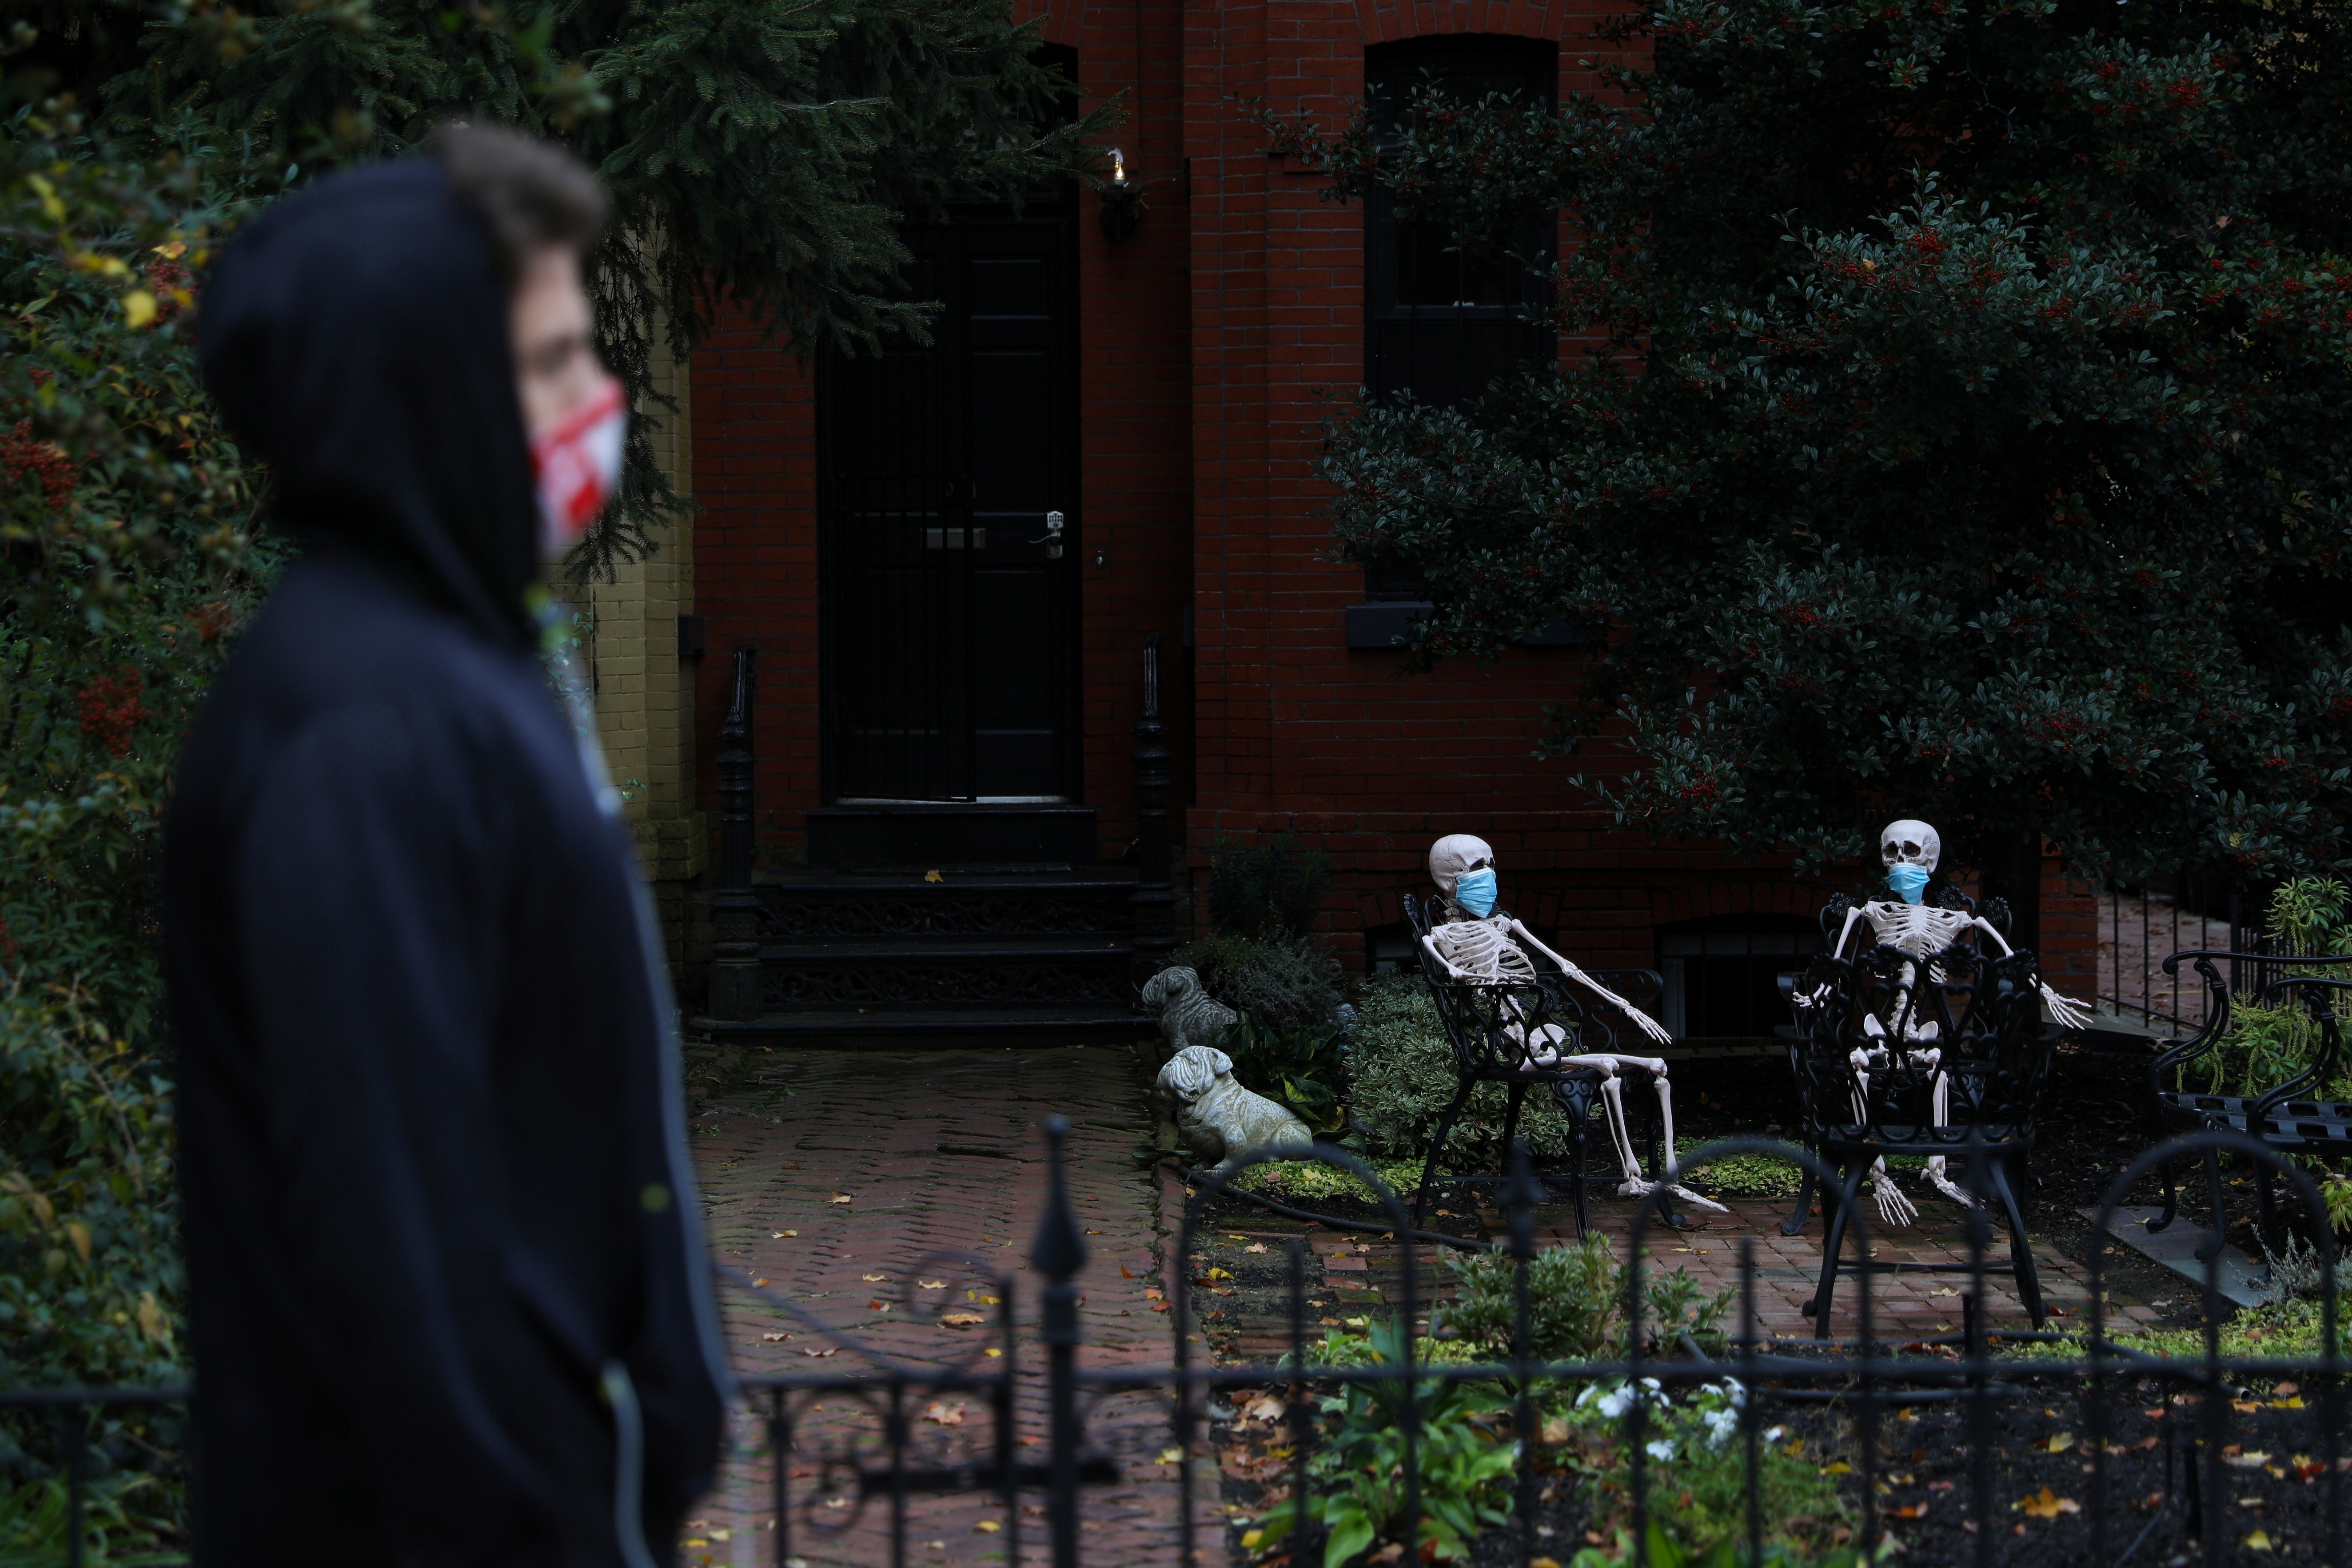 Decorative Halloween skeletons wearing protective face masks are seen along 16th Street, amid the coronavirus disease (COVID-19) outbreak, in Washington, U.S., October 28, 2020. REUTERS/Tom Brenner - RC2URJ9W32NQ